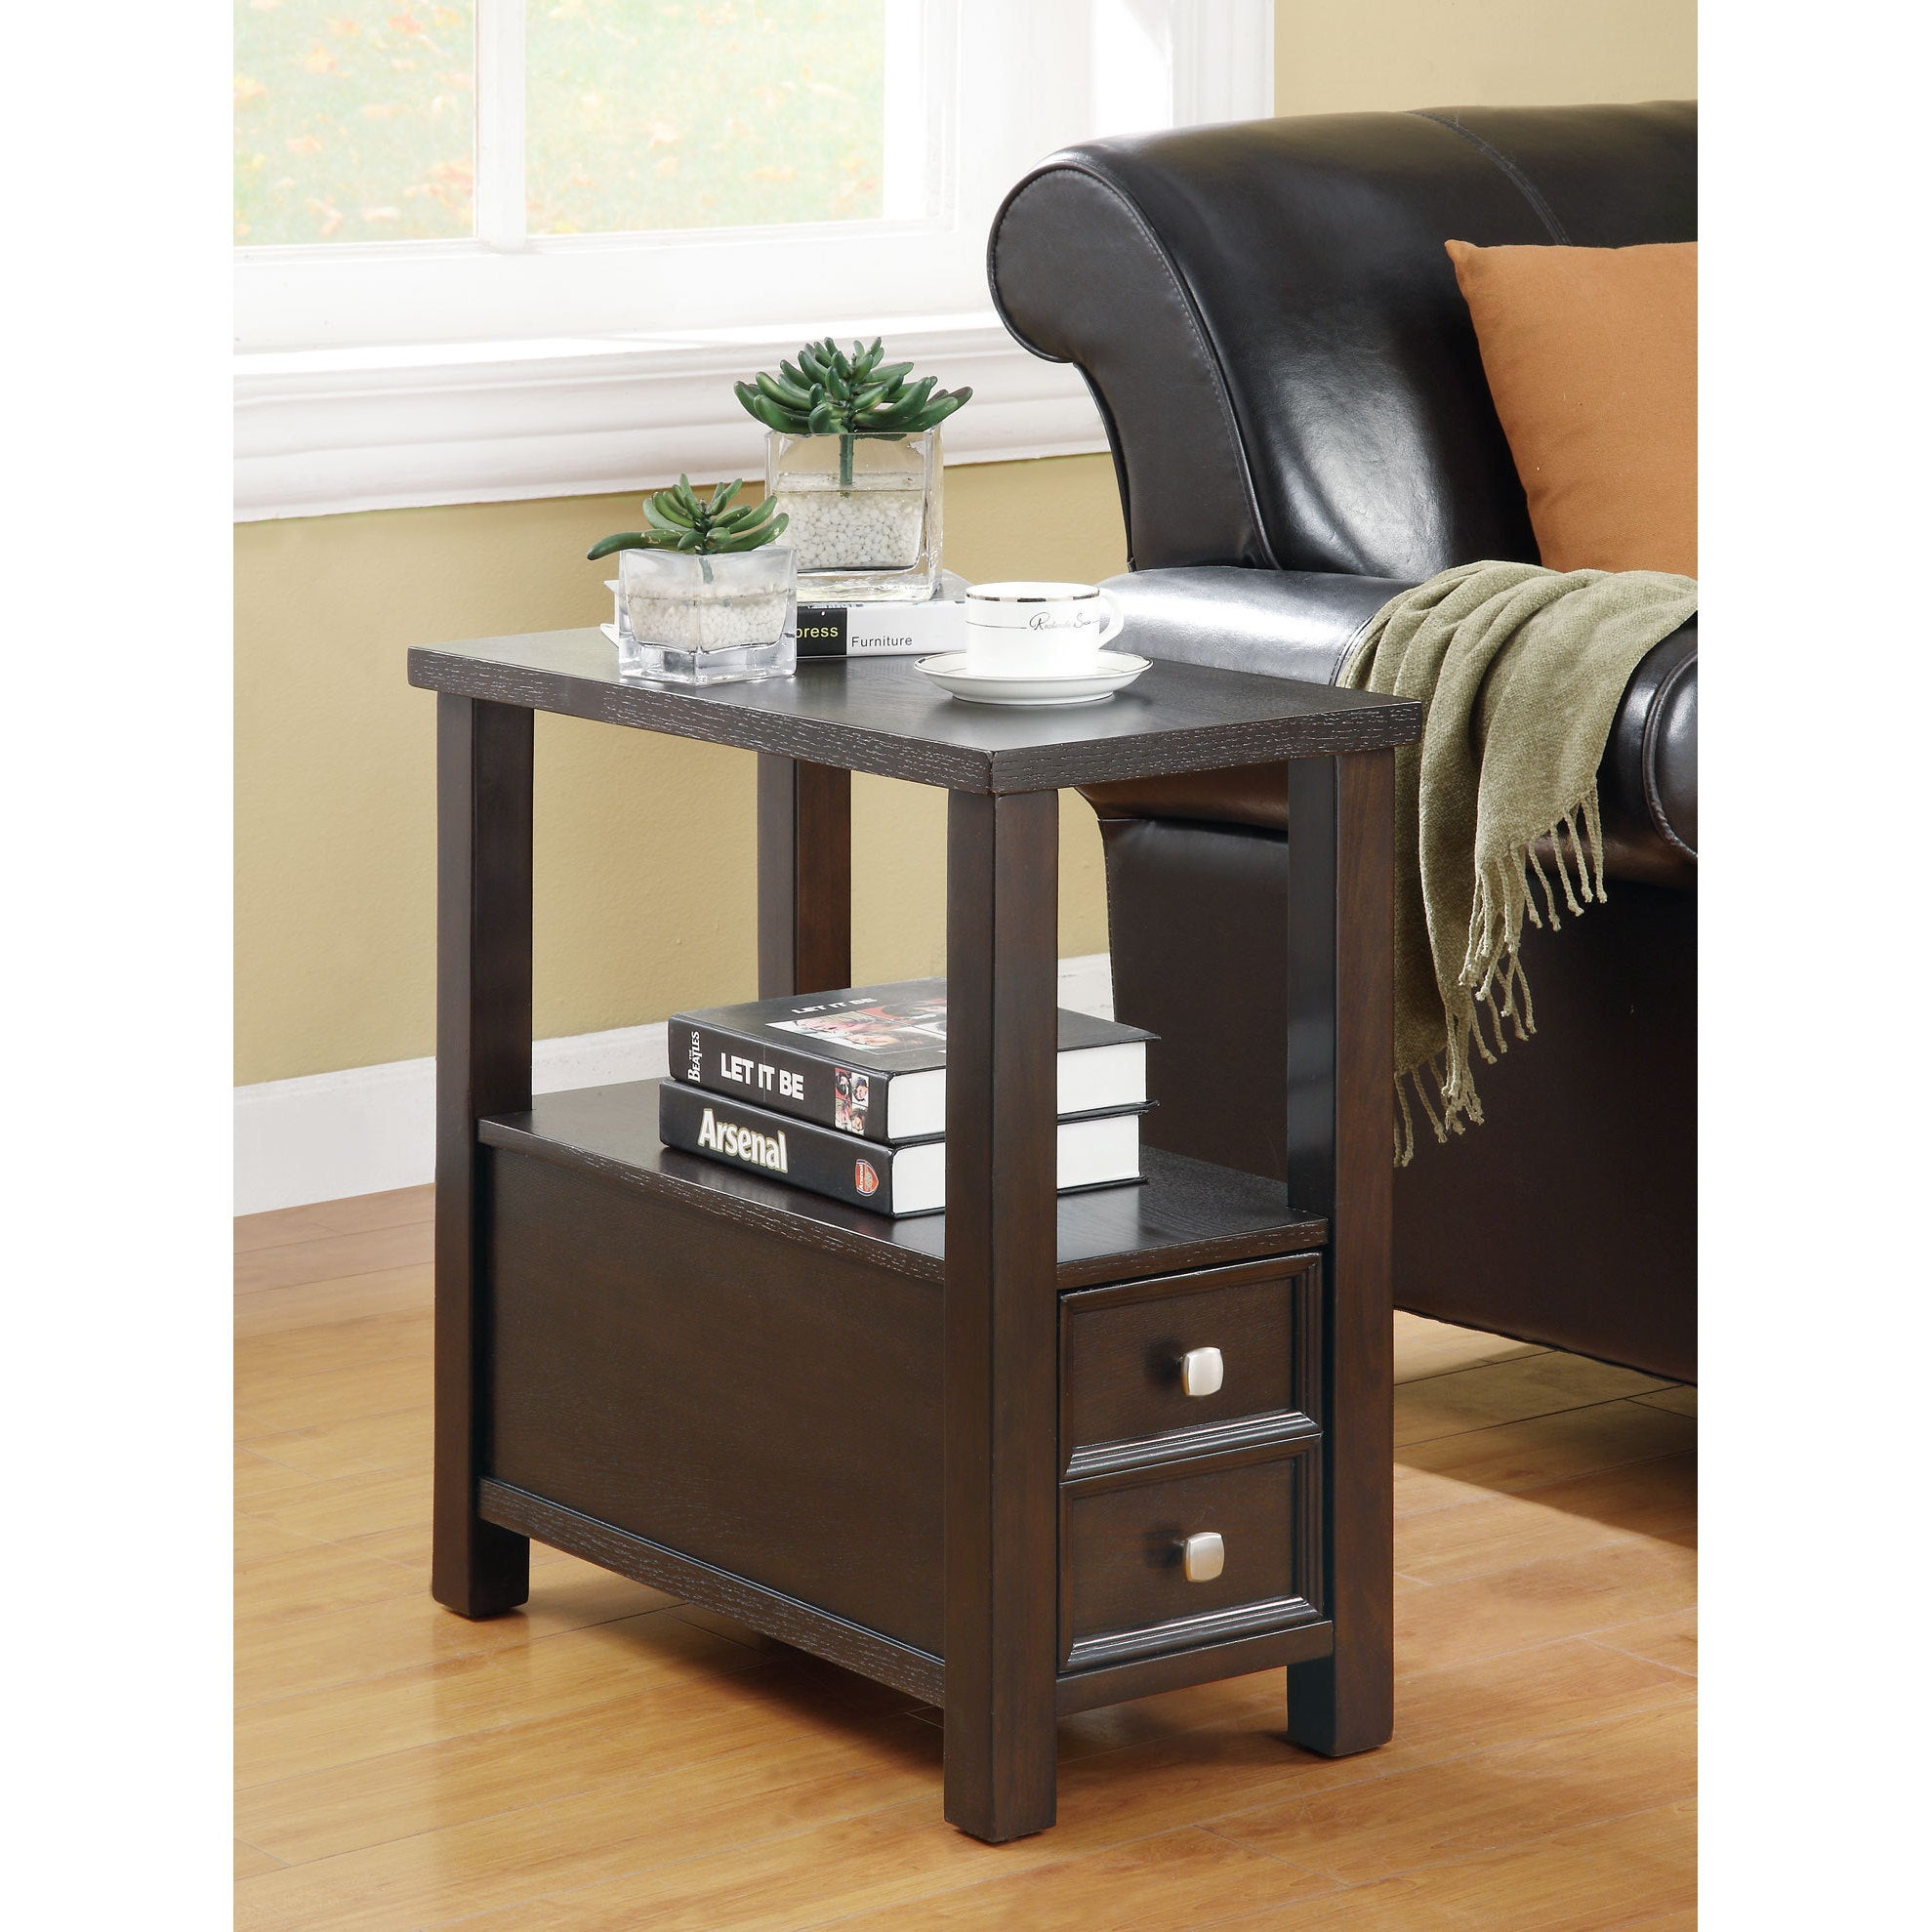 "Shop Coaster Company Cappuccino Single Drawer Side Table - 24"" x"